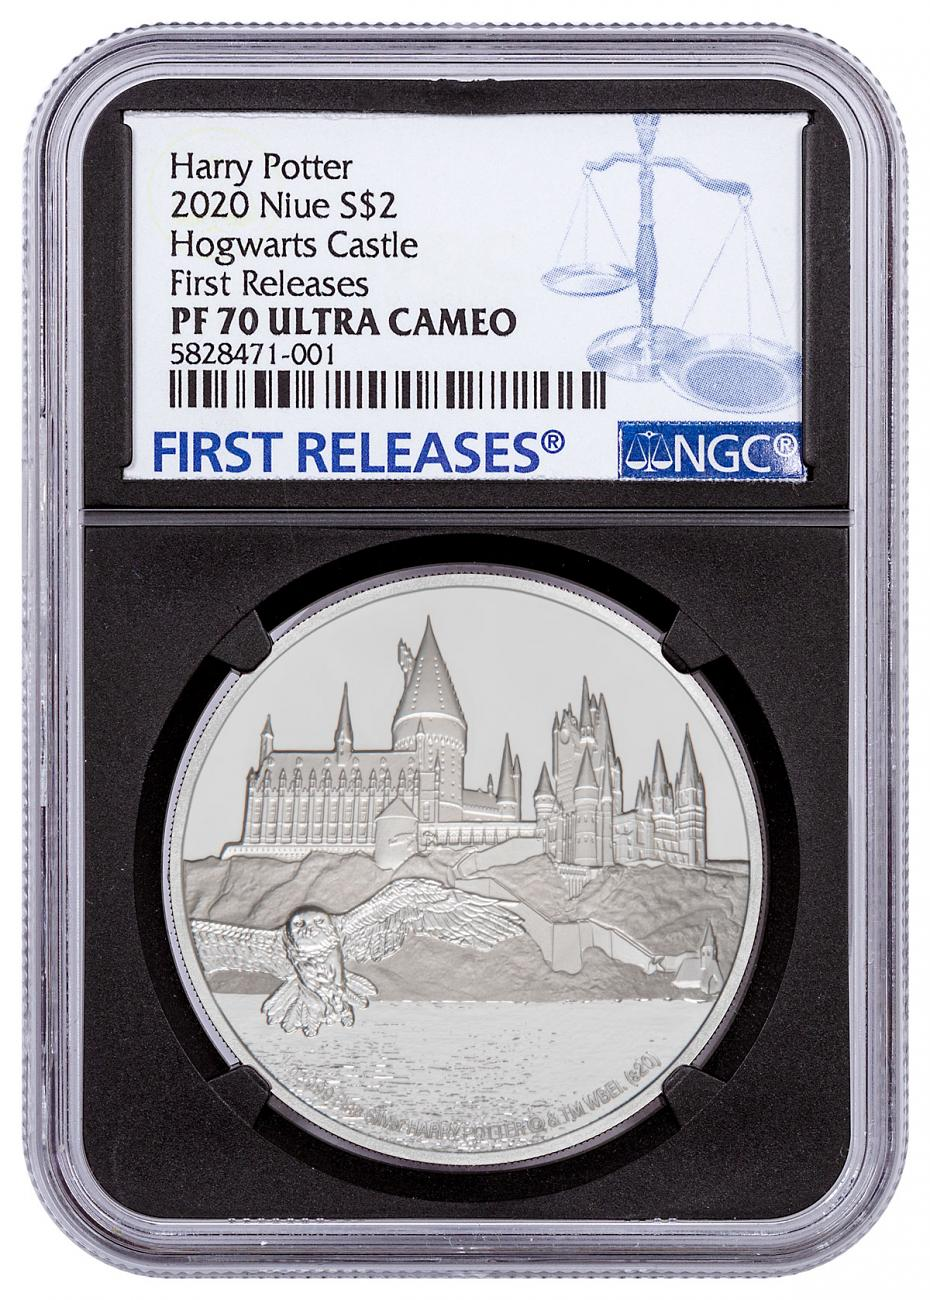 2020 Niue Harry Potter - Hogwarts 1 oz Silver Proof $2 Coin NGC PF70 UC FR Black Core Holder